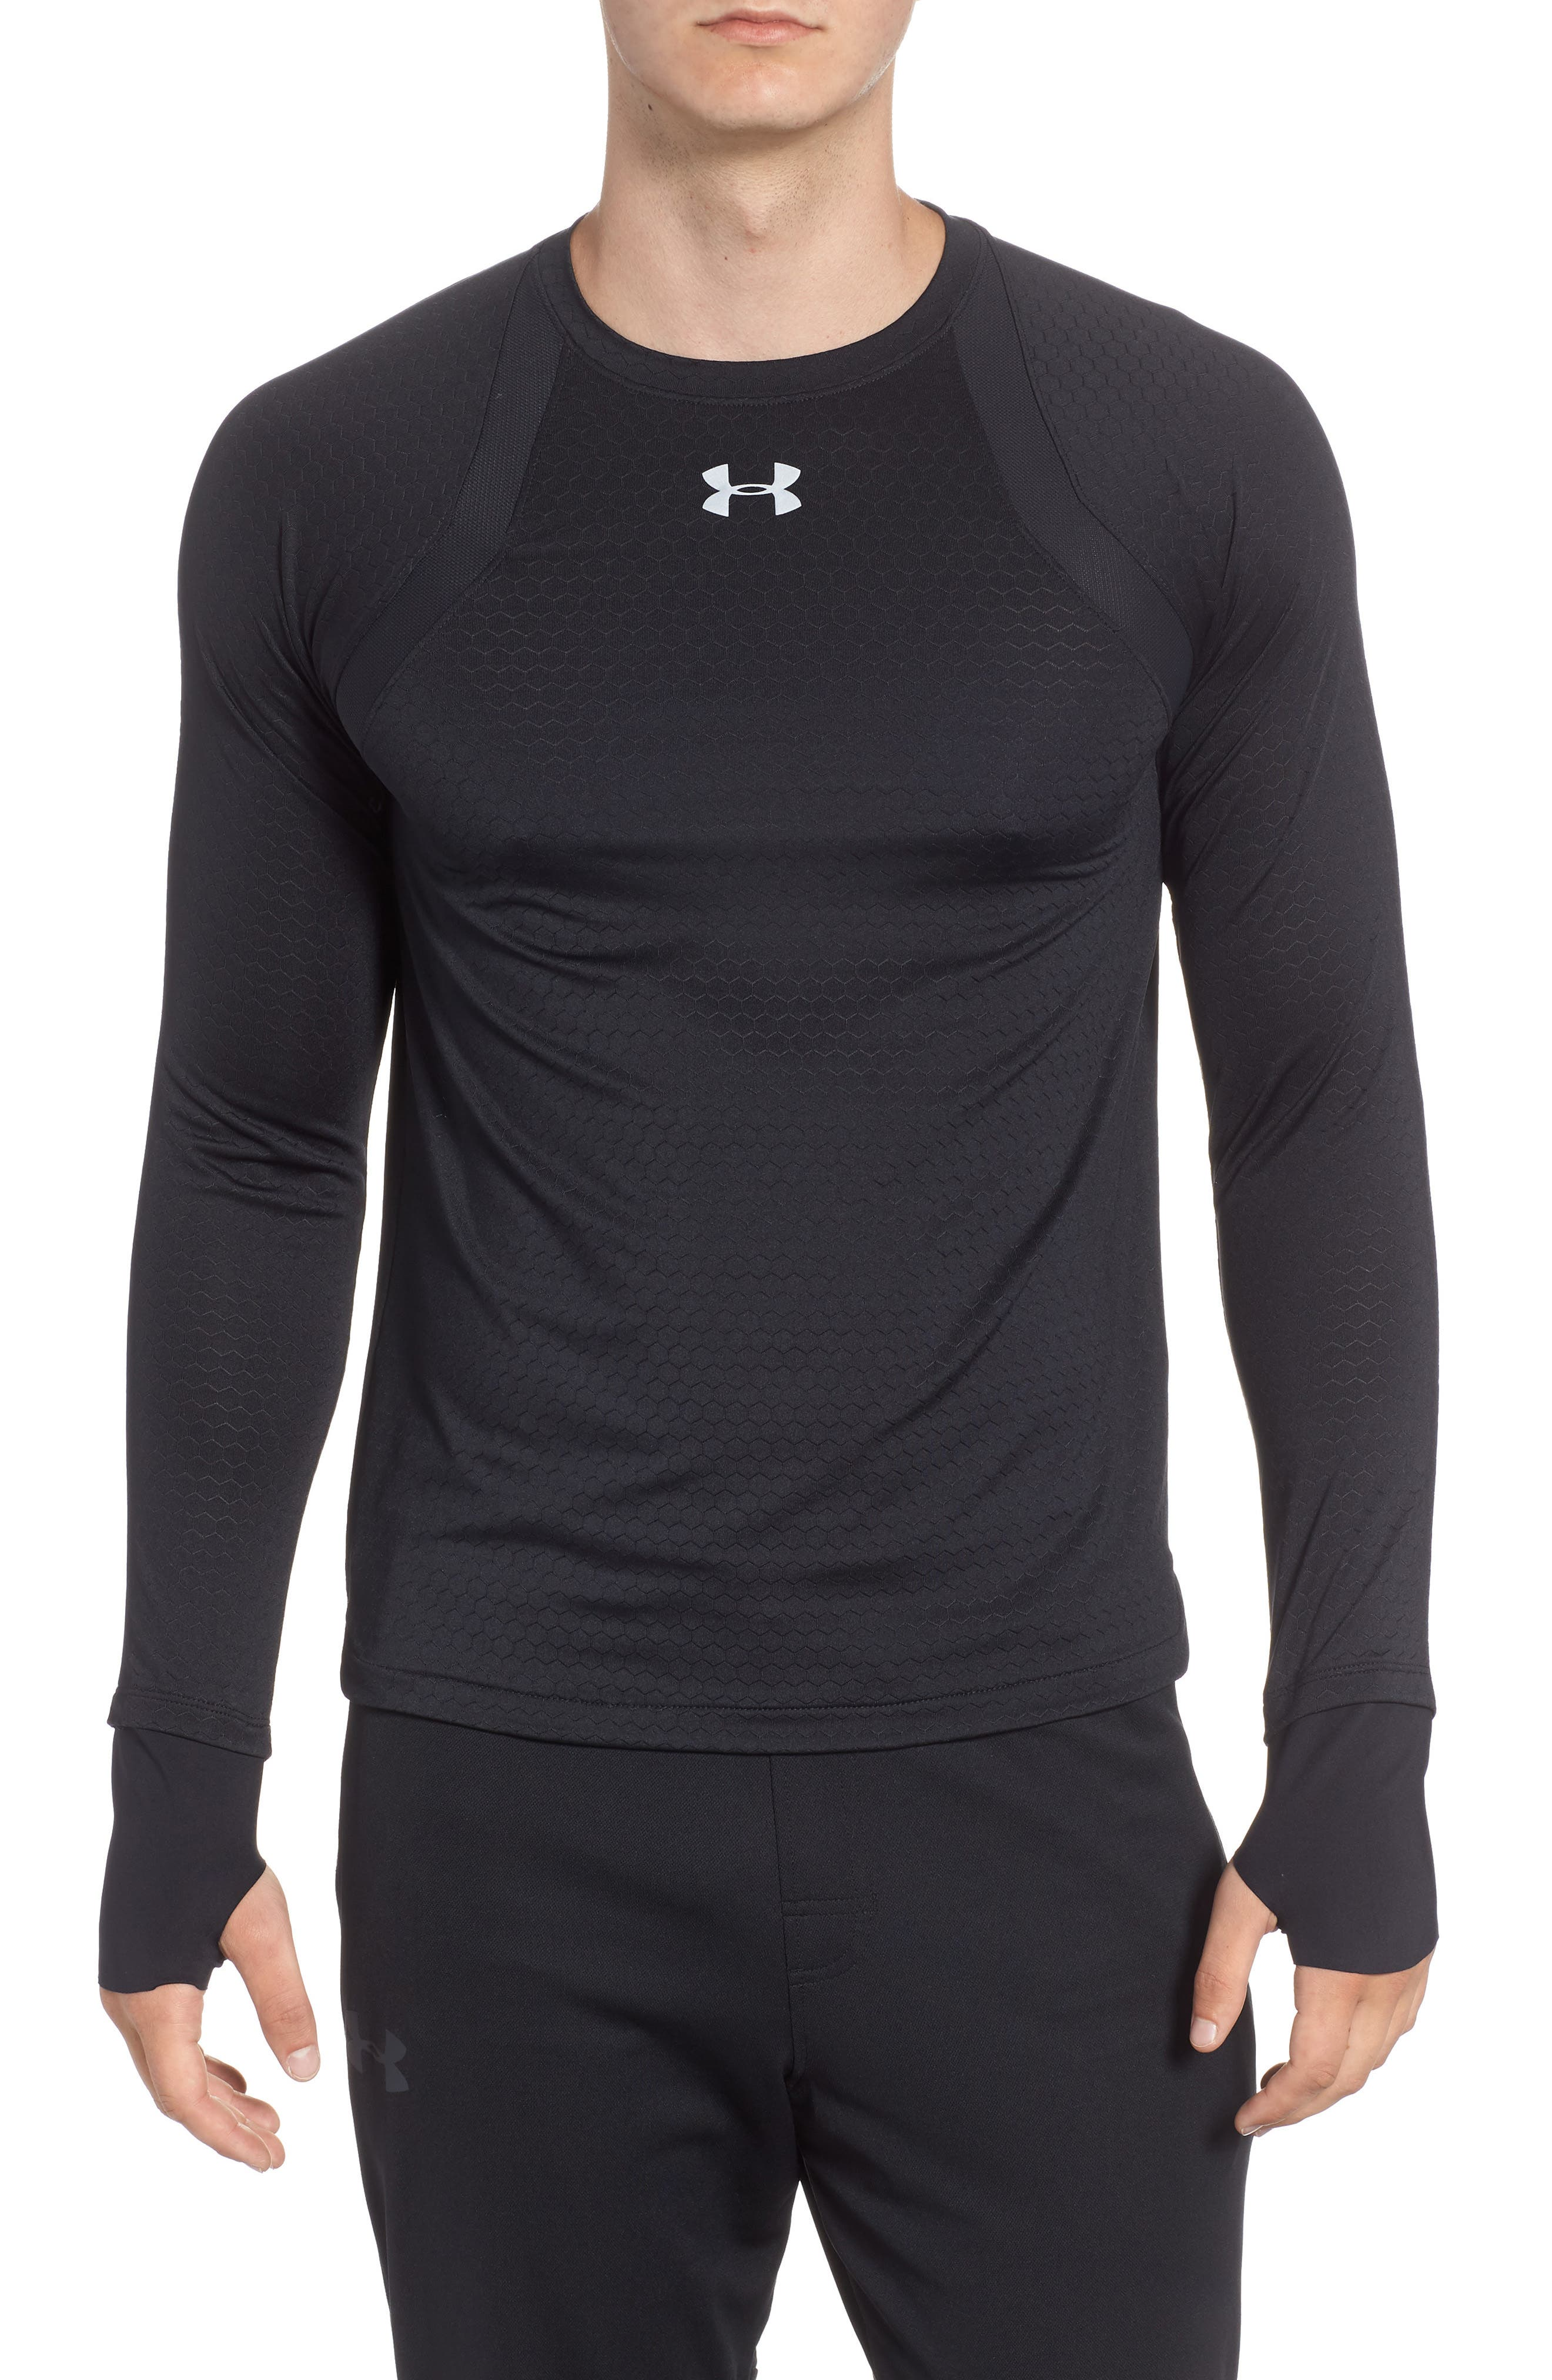 HexDelta Long Sleeve T-Shirt,                         Main,                         color, BLACK/ BLACK/ REFLECTIVE